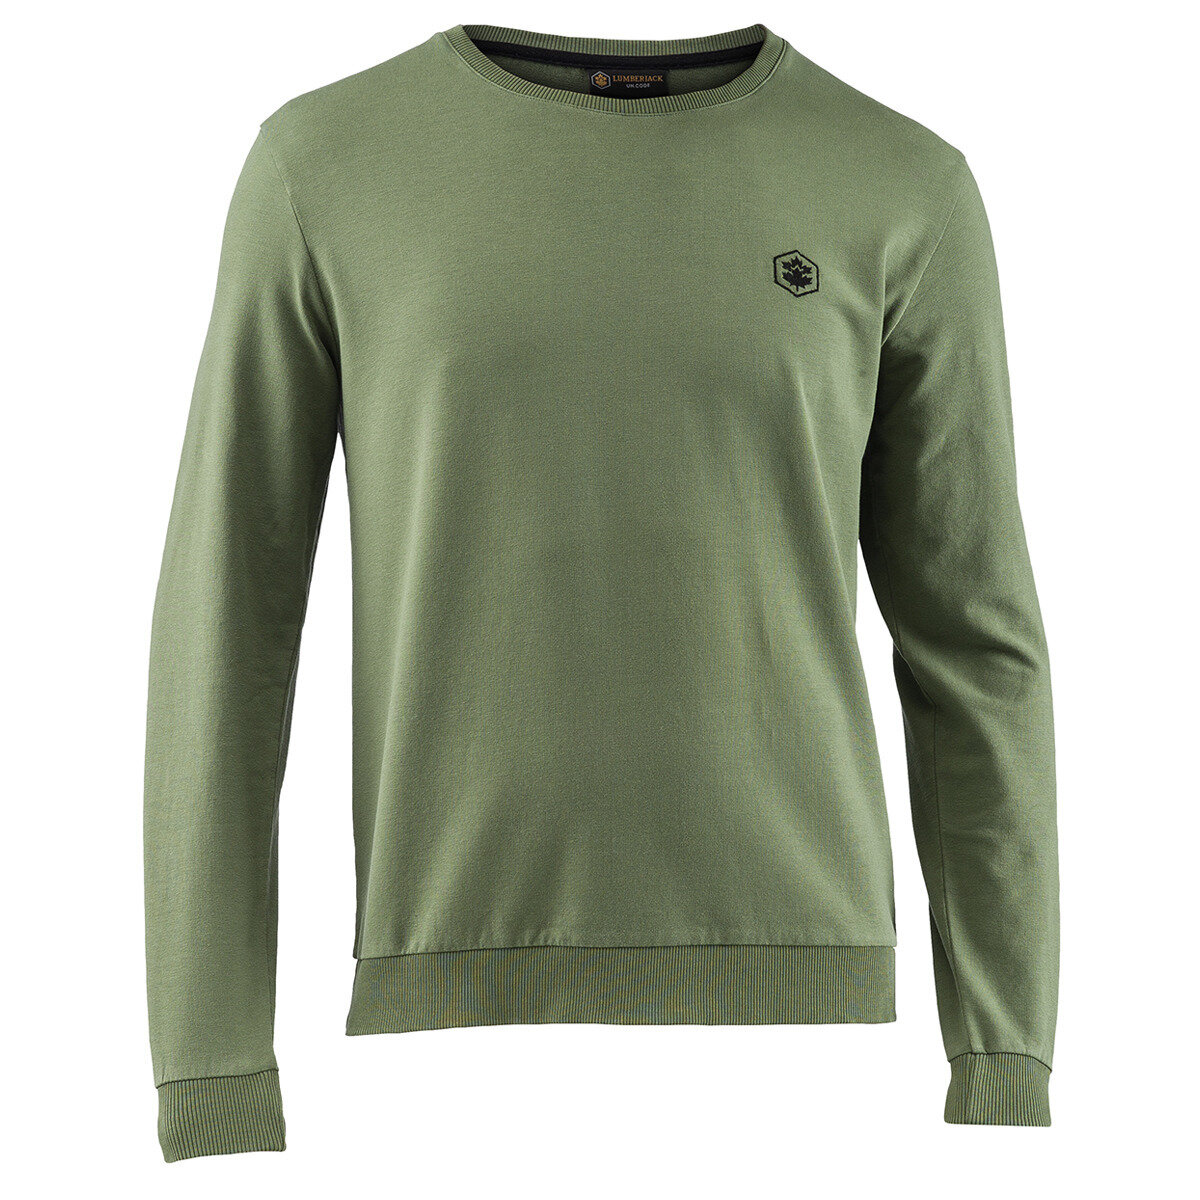 SWEATSHIRT OLIVE NIGHT GREEN Man Sweatshirts